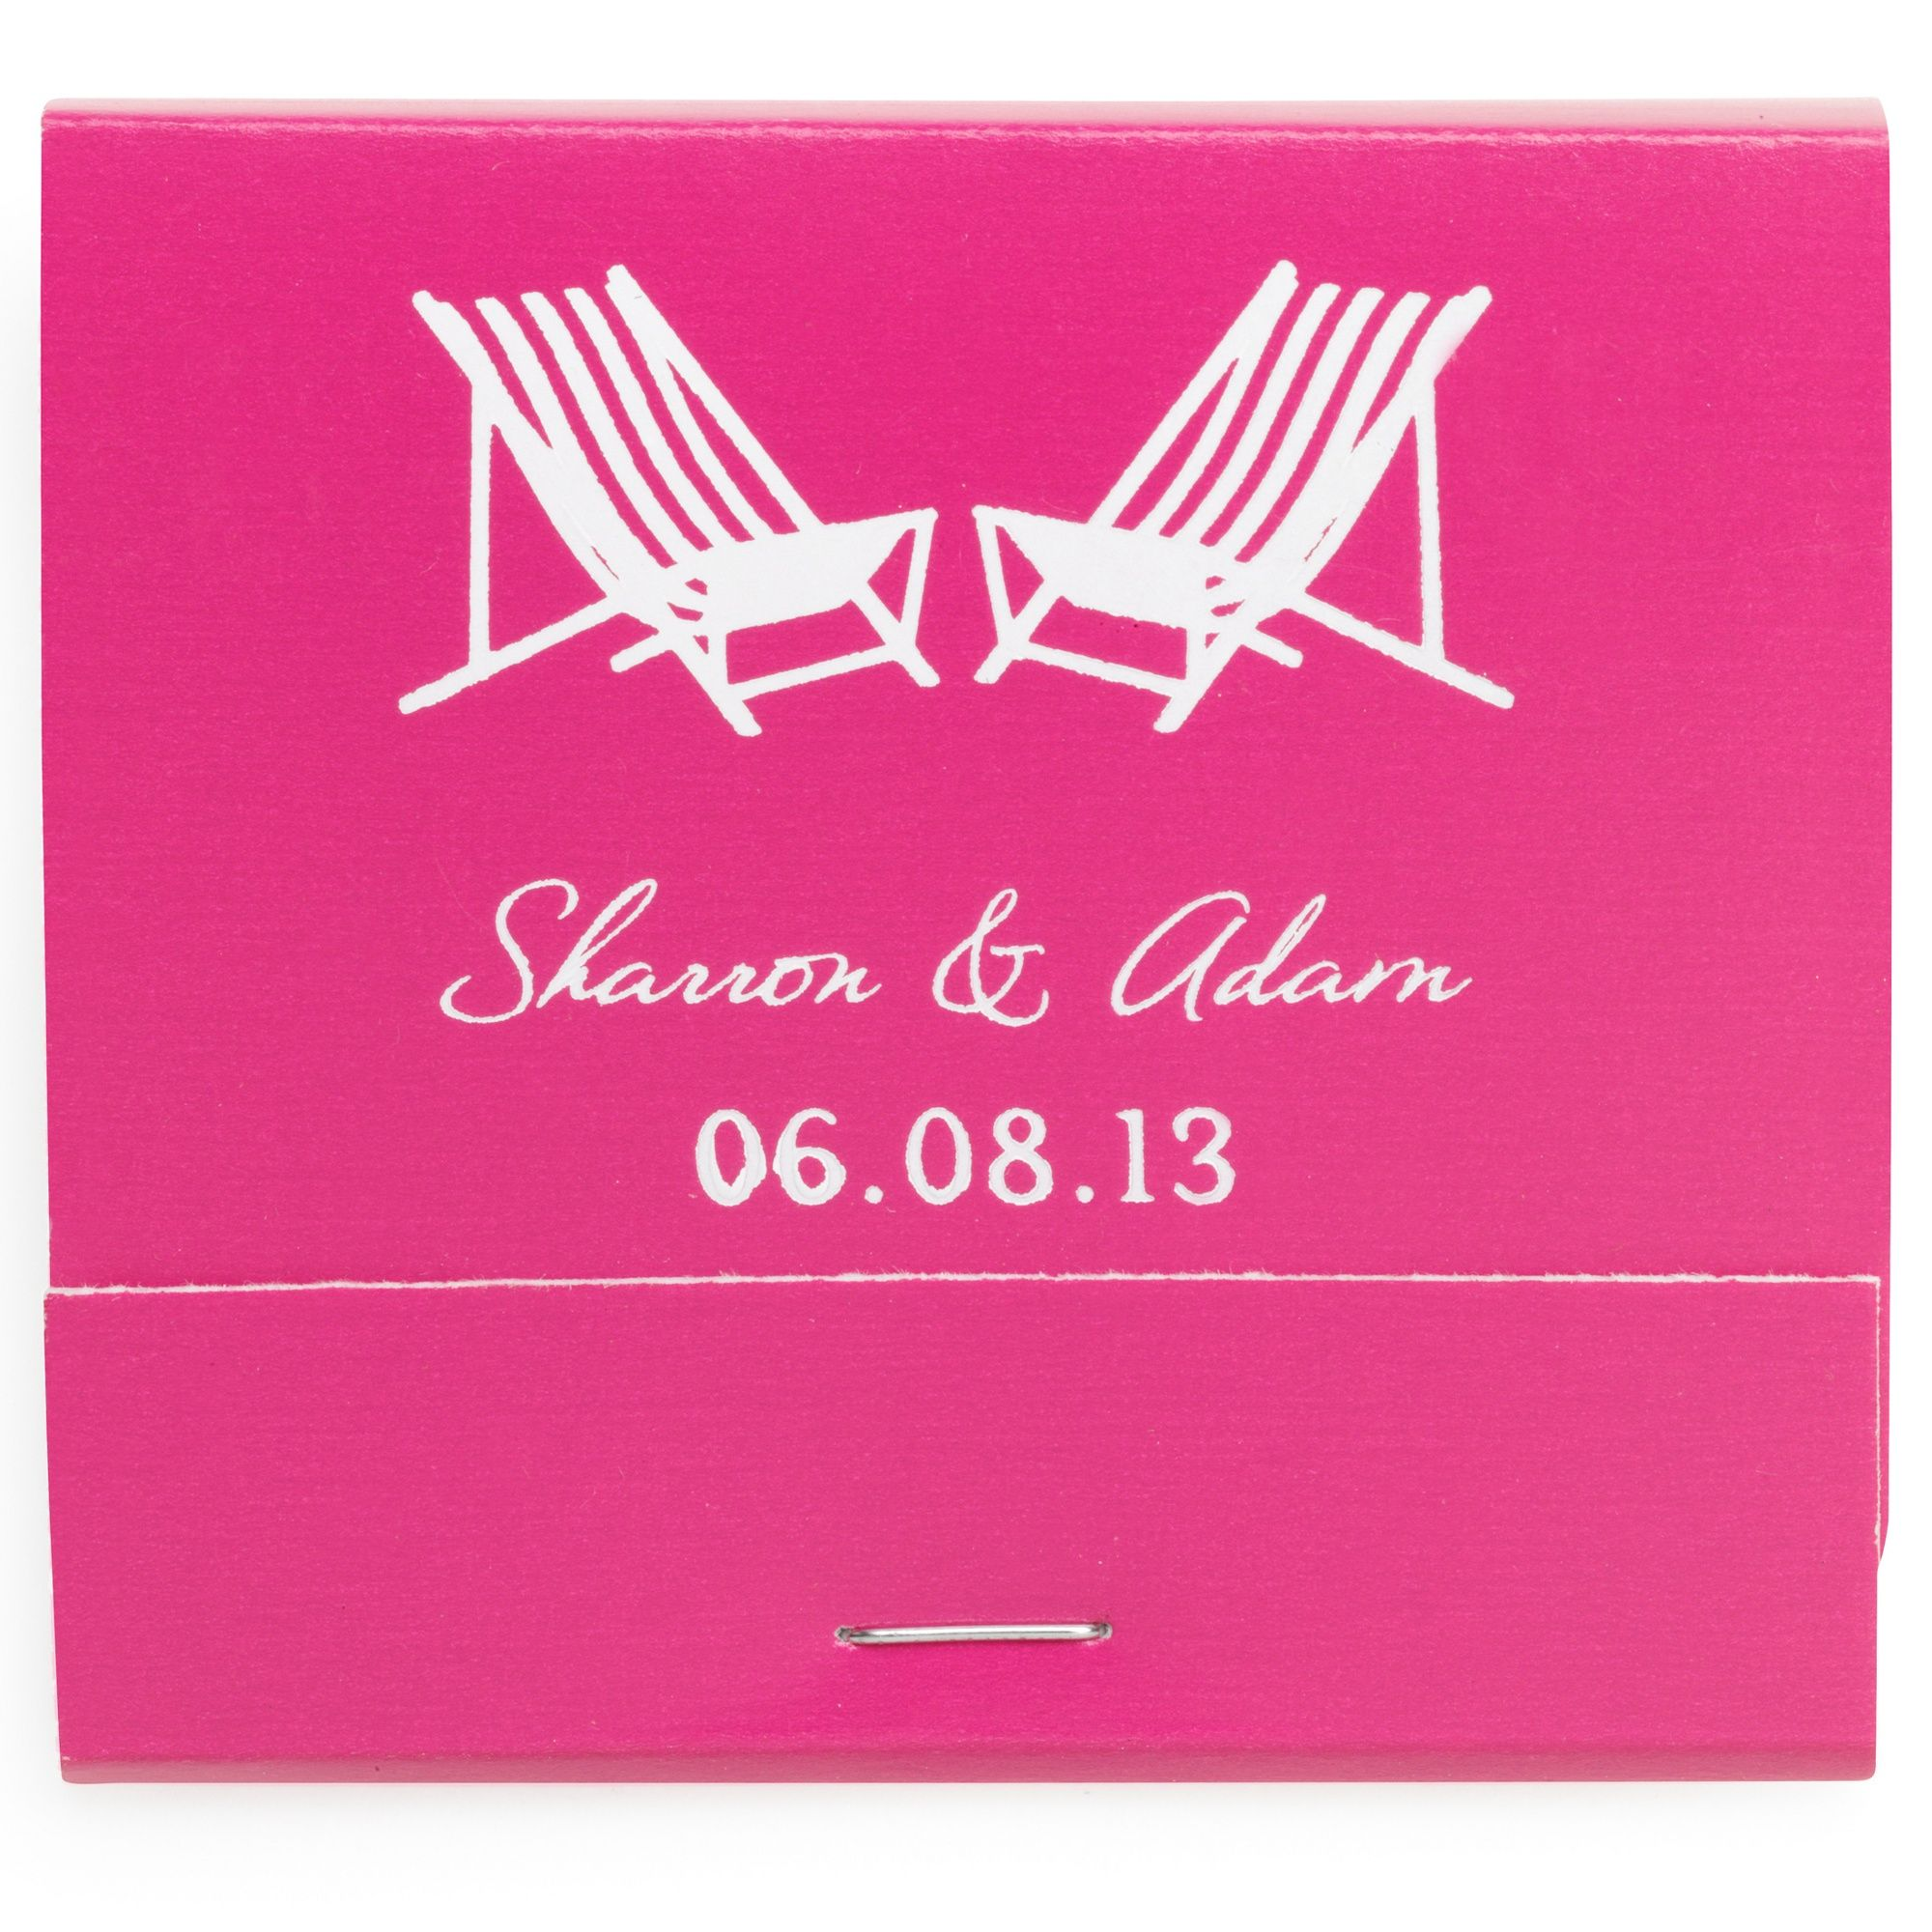 Personalized Matchbooks, Box of 50 | Favors, Wedding and Exclusively ...